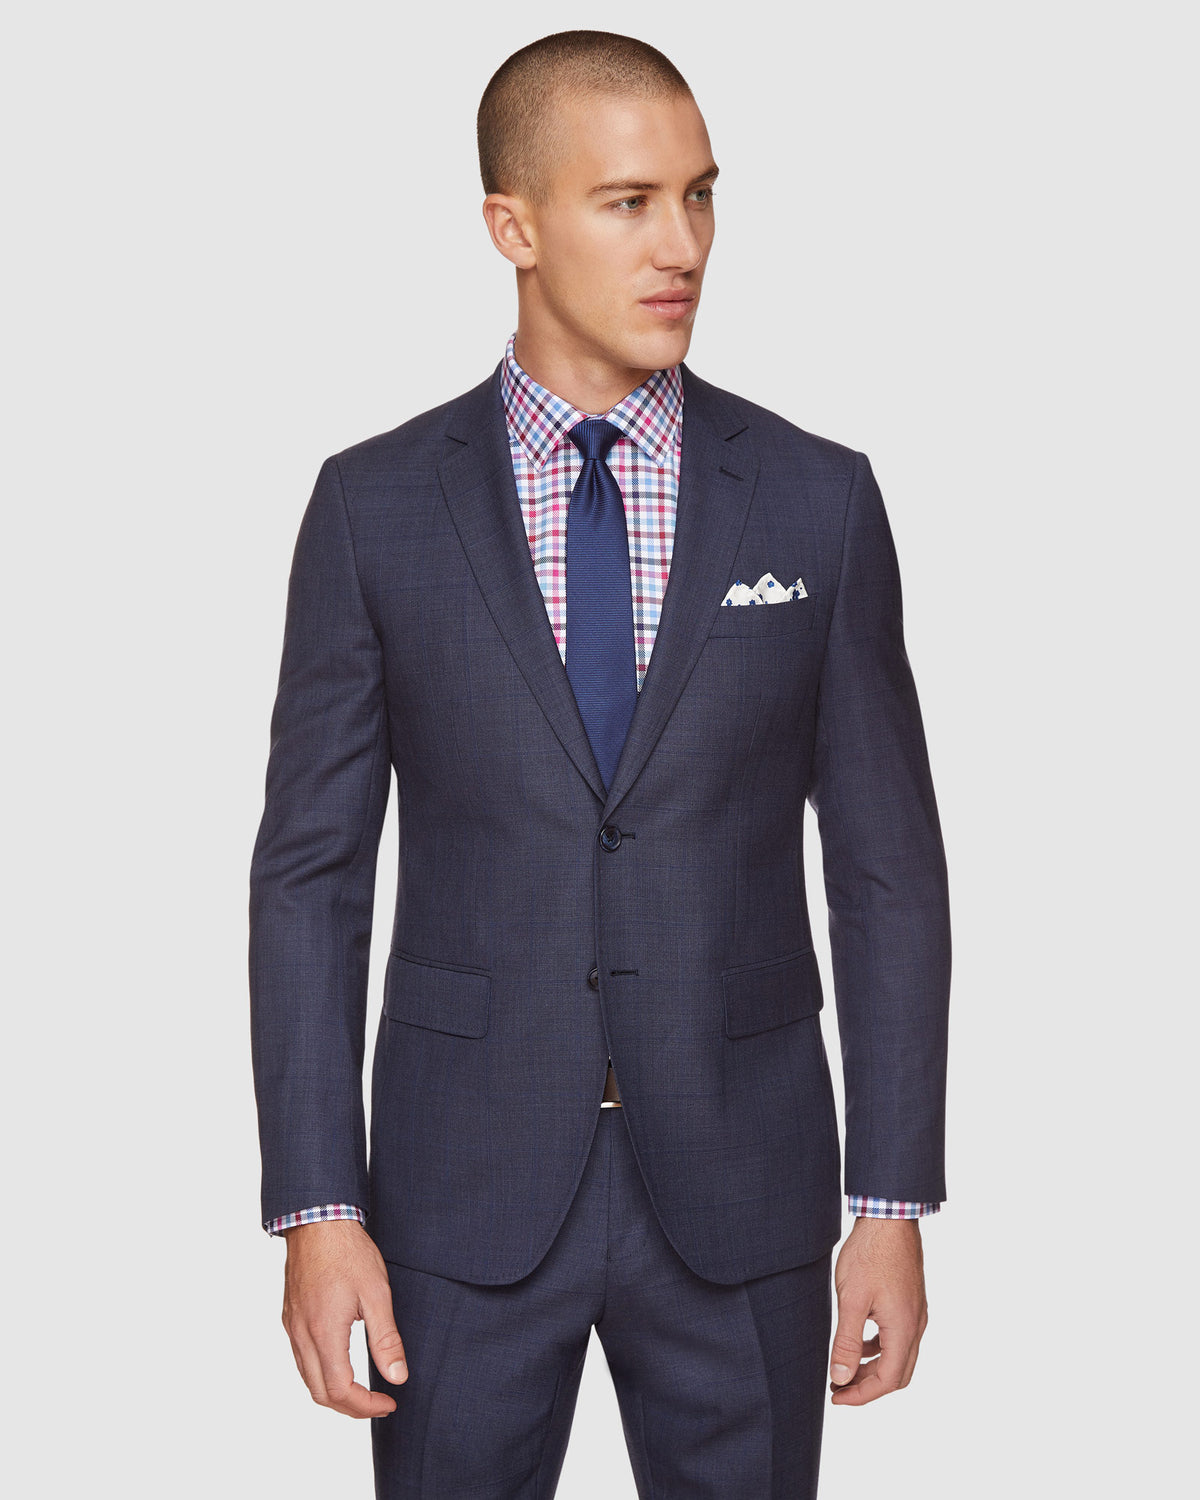 AUDEN WOOL CHECKED SUIT SET NAVY